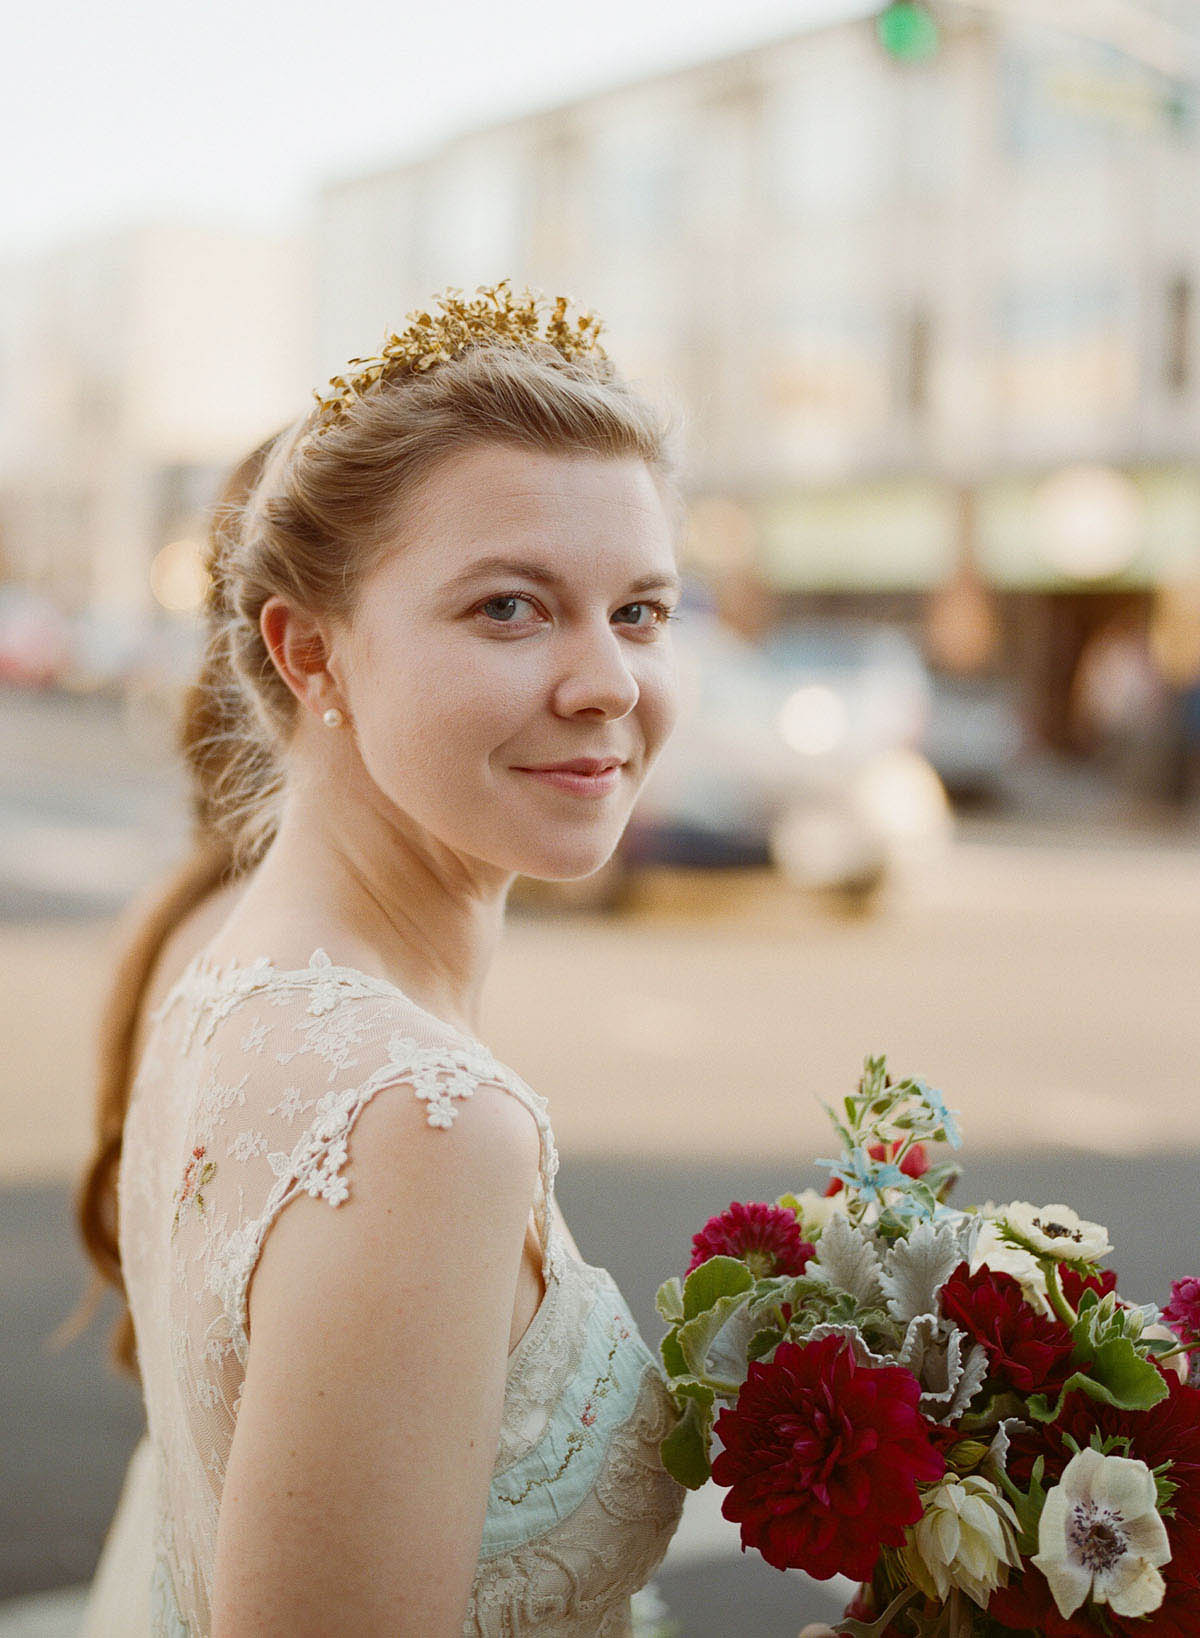 23-bride-smiling-crown.jpg